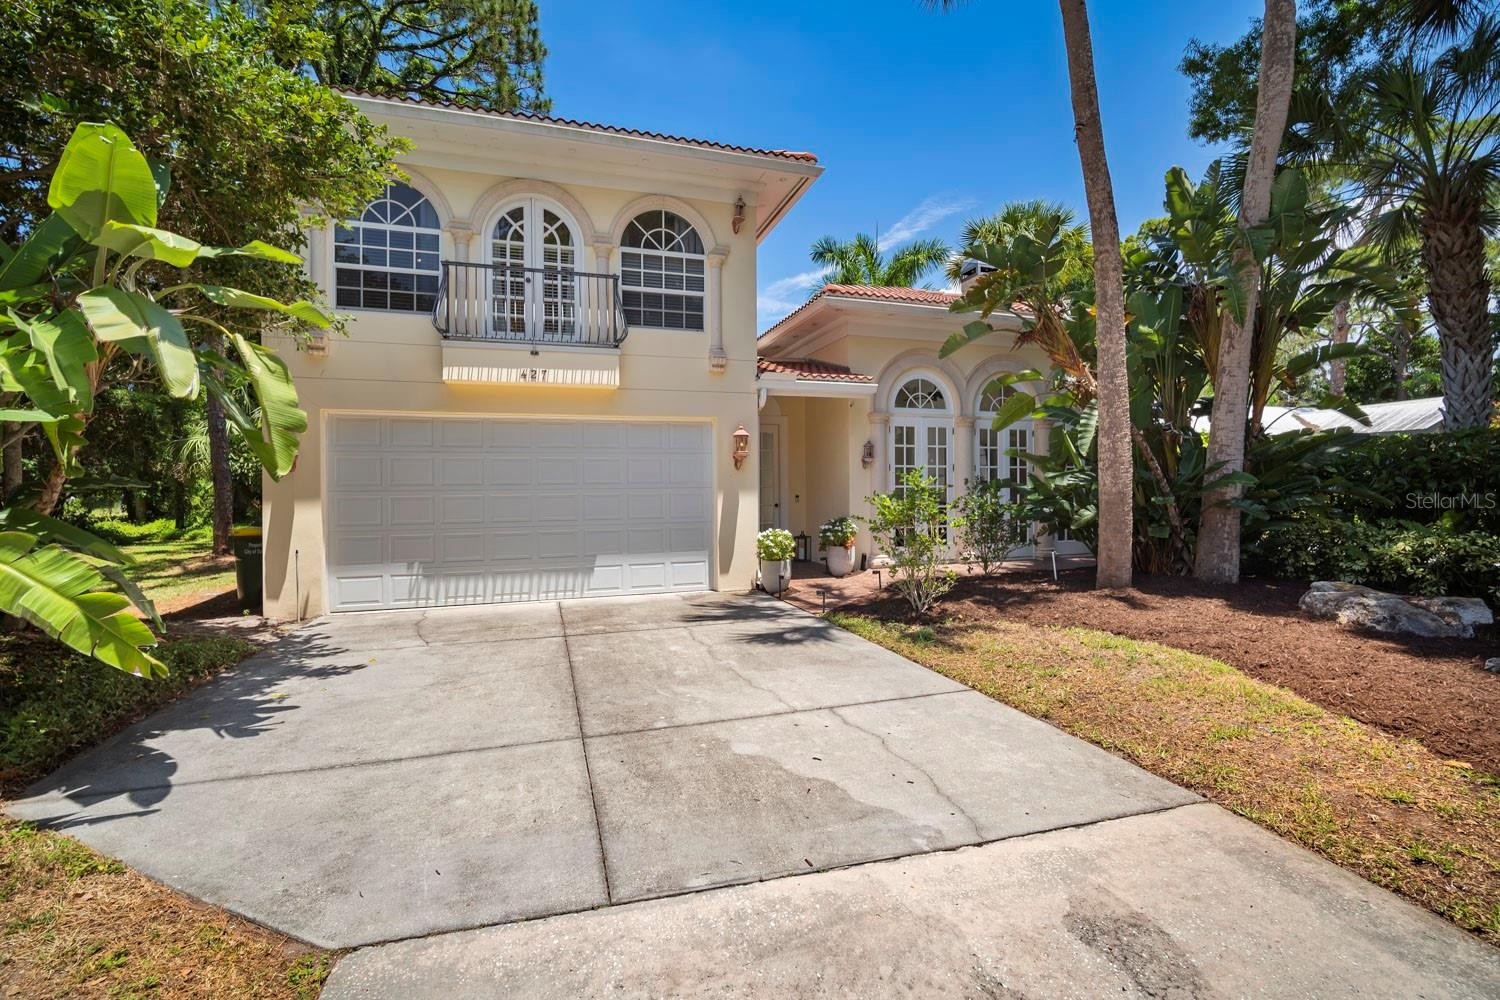 Primary photo of recently sold MLS# A4500656